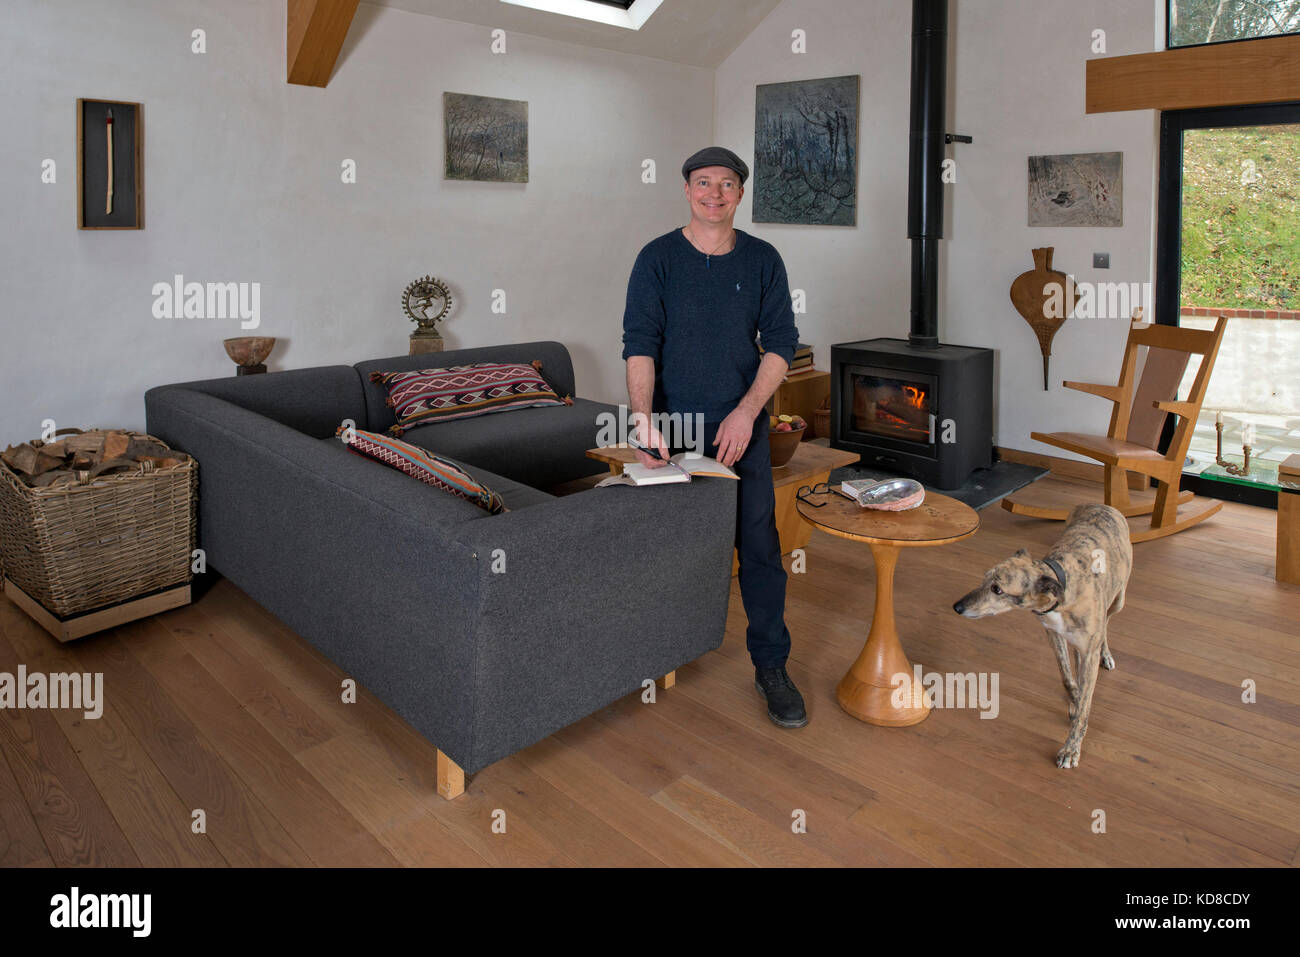 Good Furniture Maker James Verner At His Home In Dorset.   Stock Image